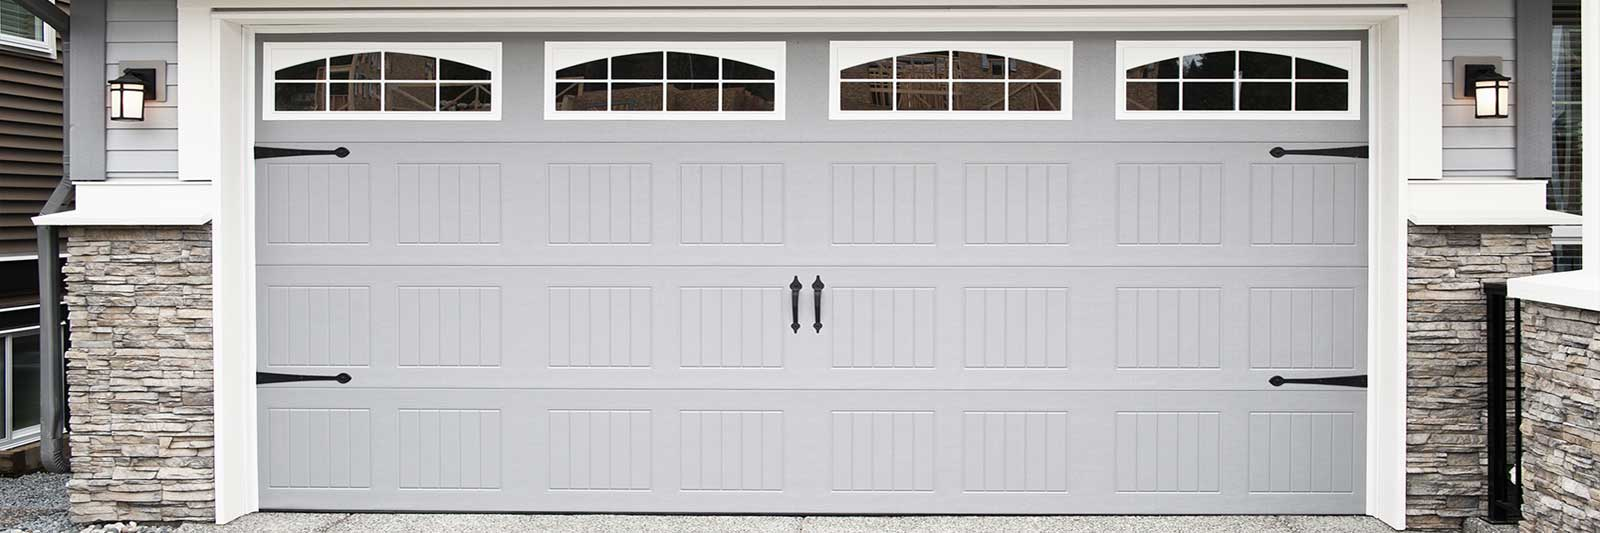 Garage-Door-Repair-fort-worth